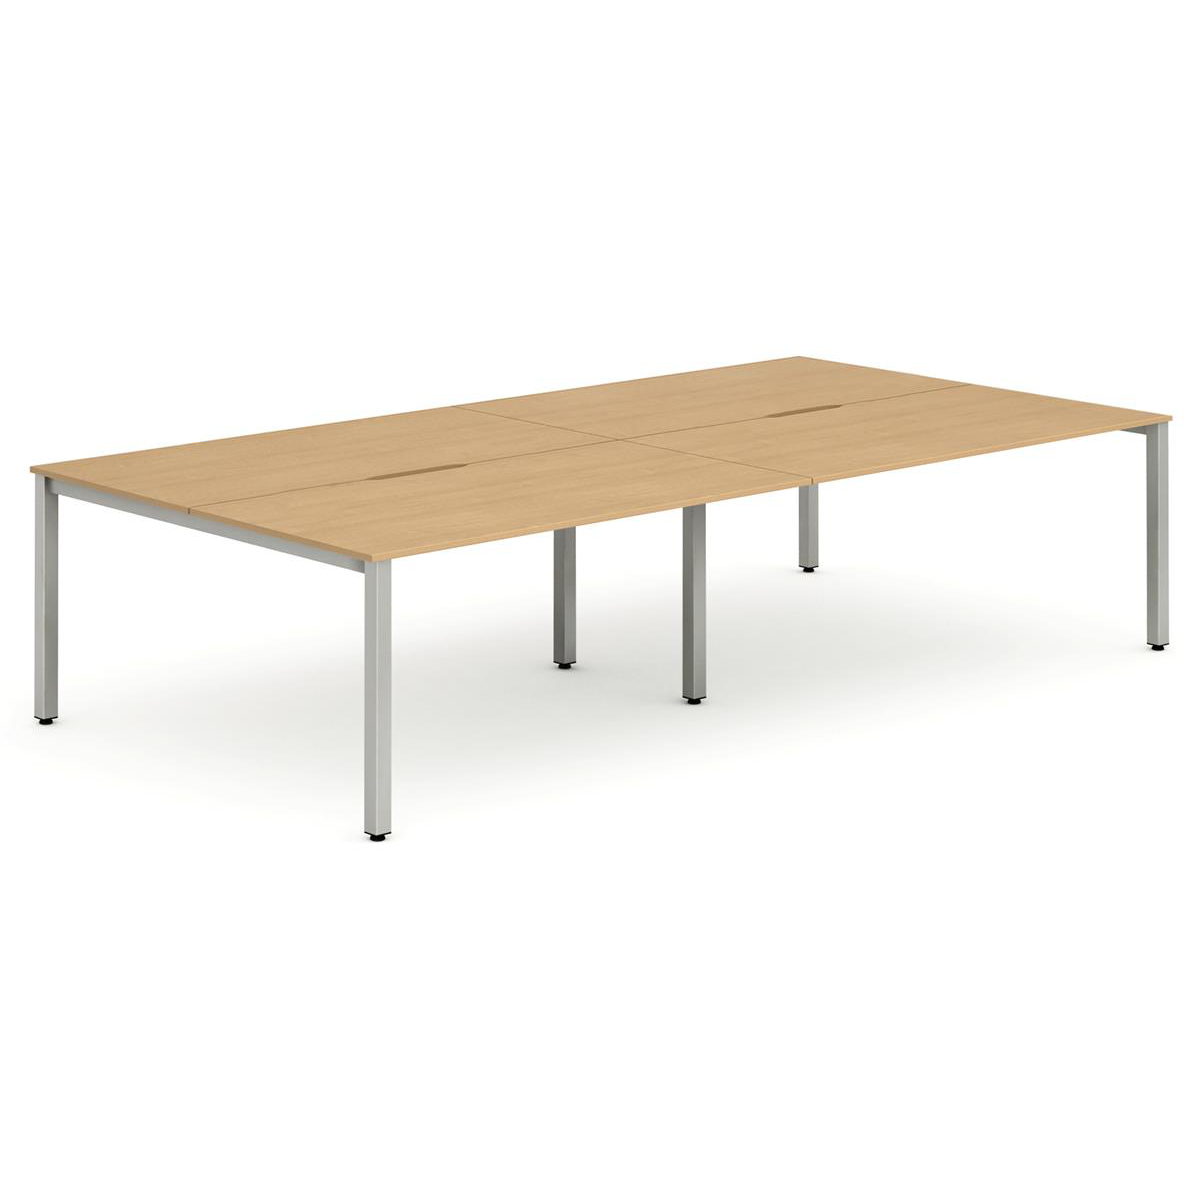 Trexus Bench Desk 4 Person Lockable Sliding Top 1400mm Beech with Silver Frame